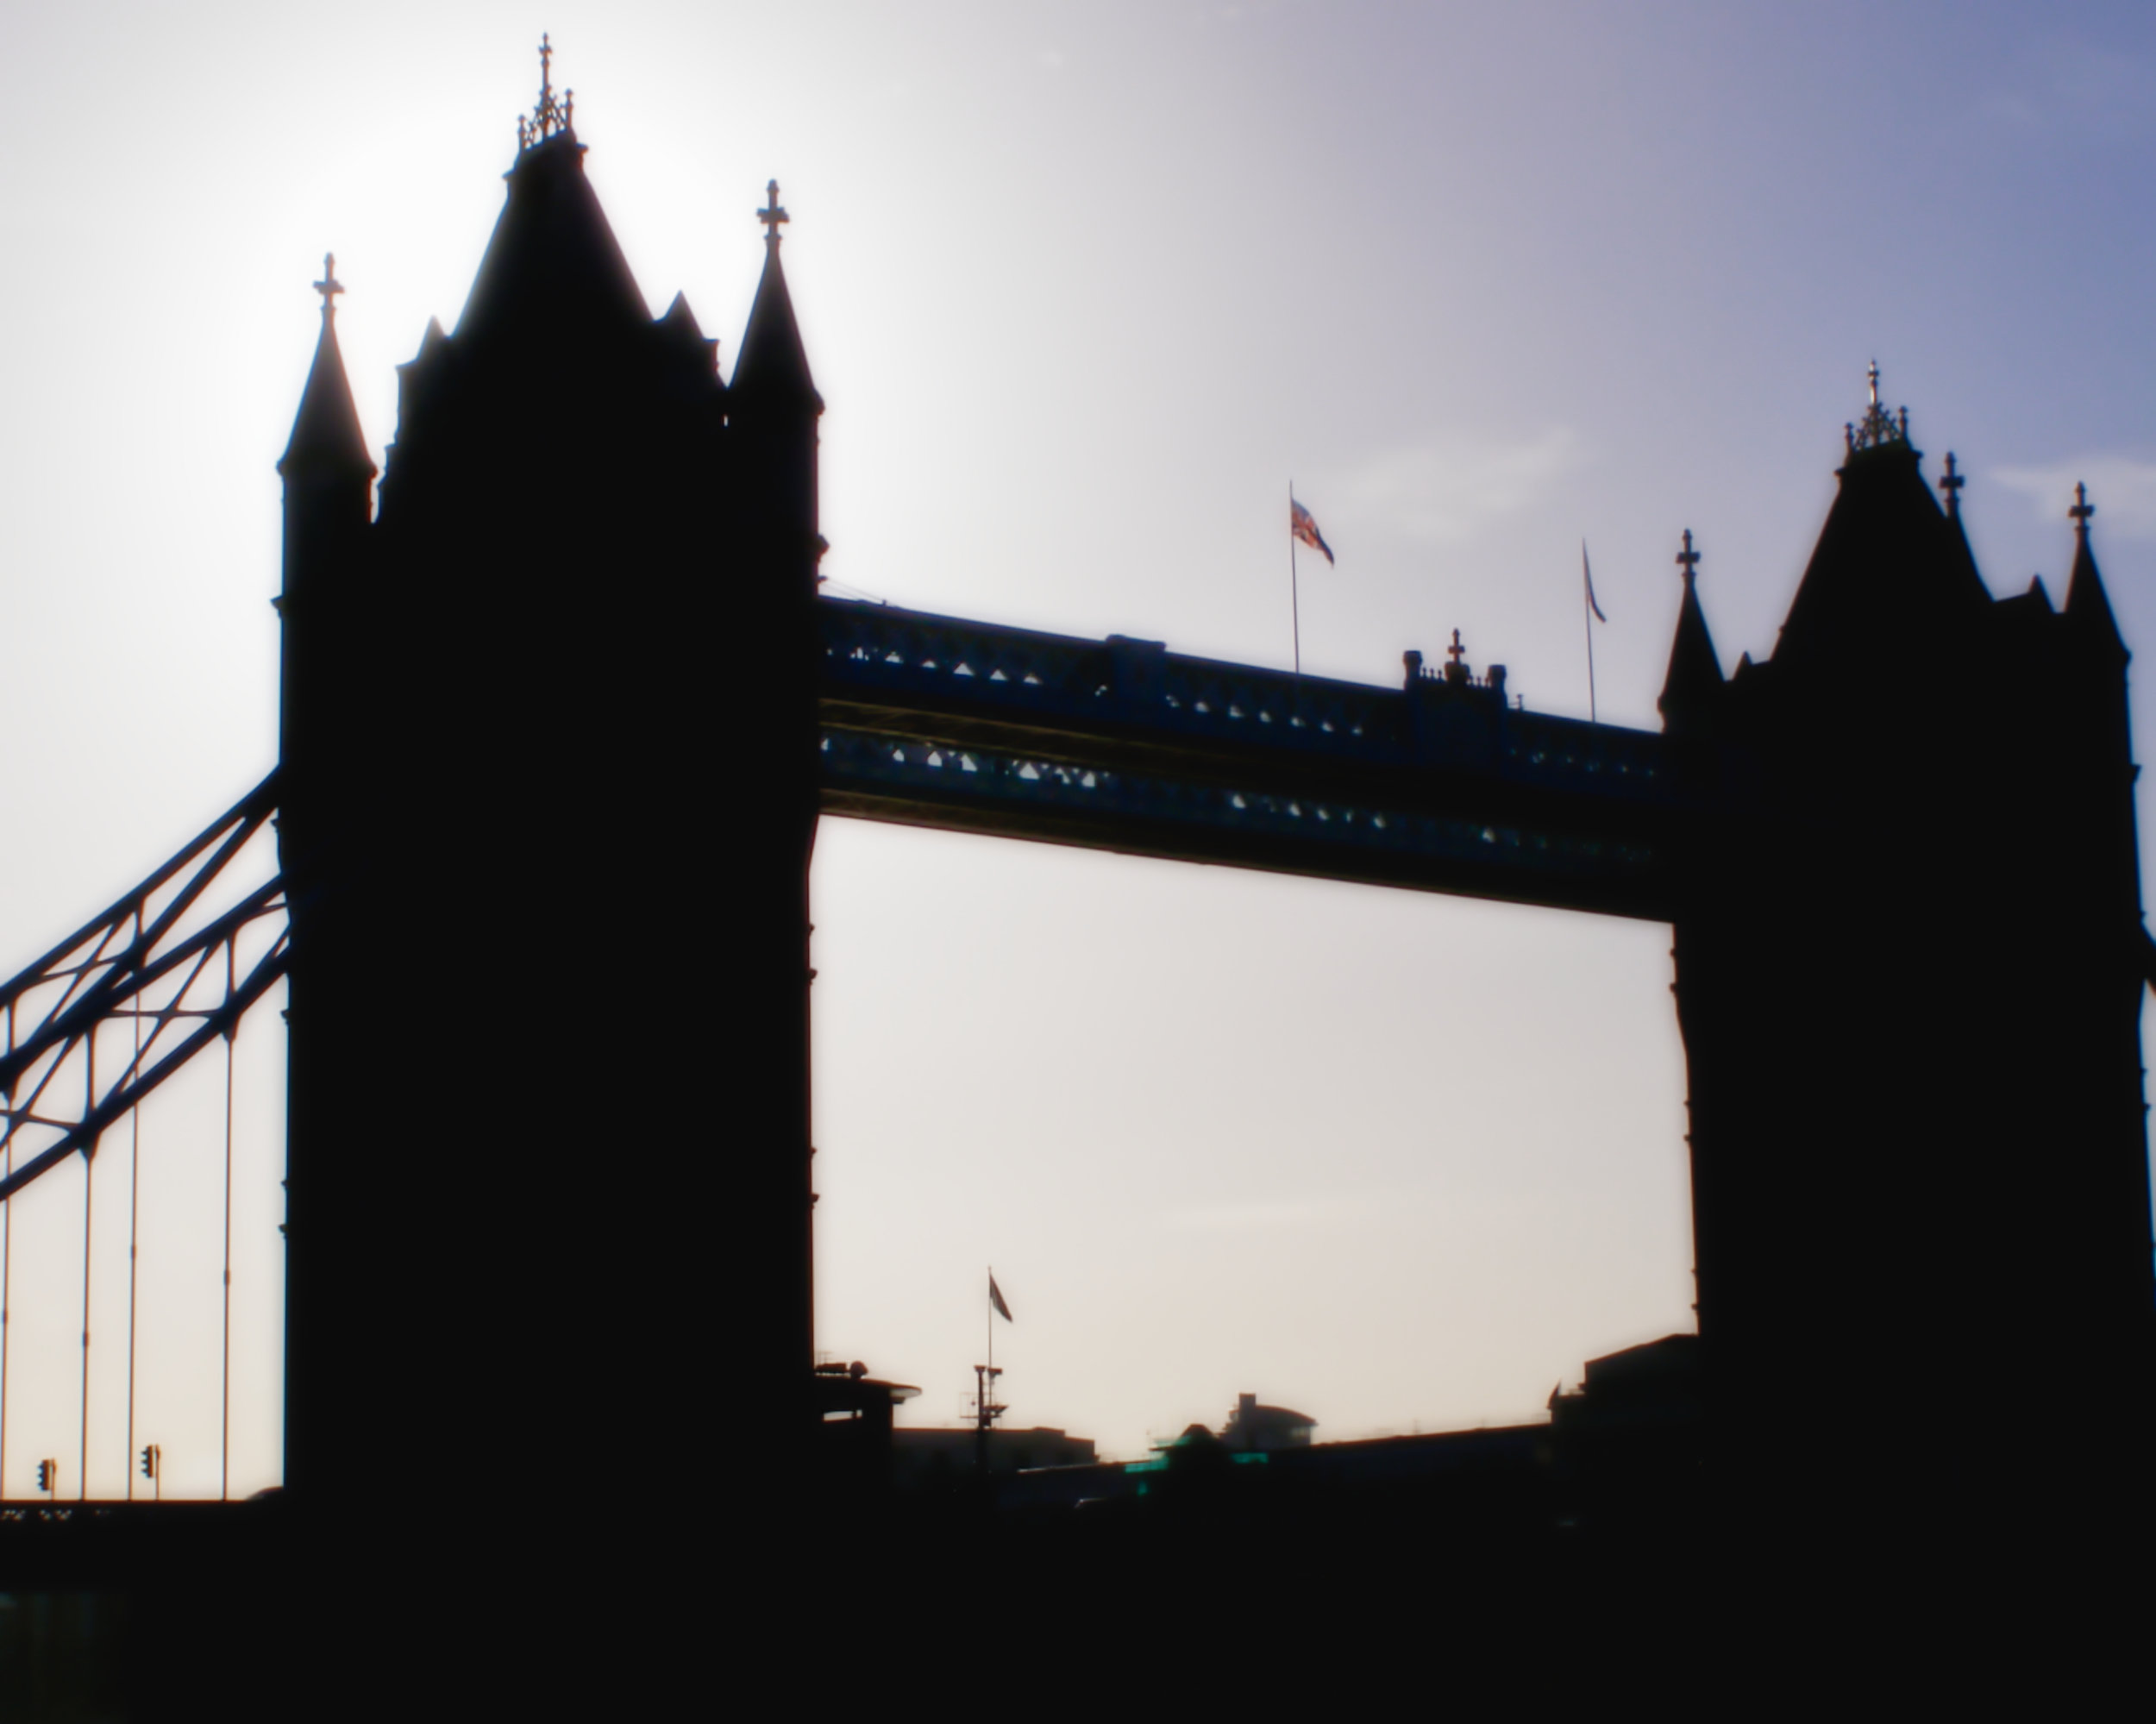 Bridge Silouette-London Bridge-London-England-wmlamont_6PB010130.jpg